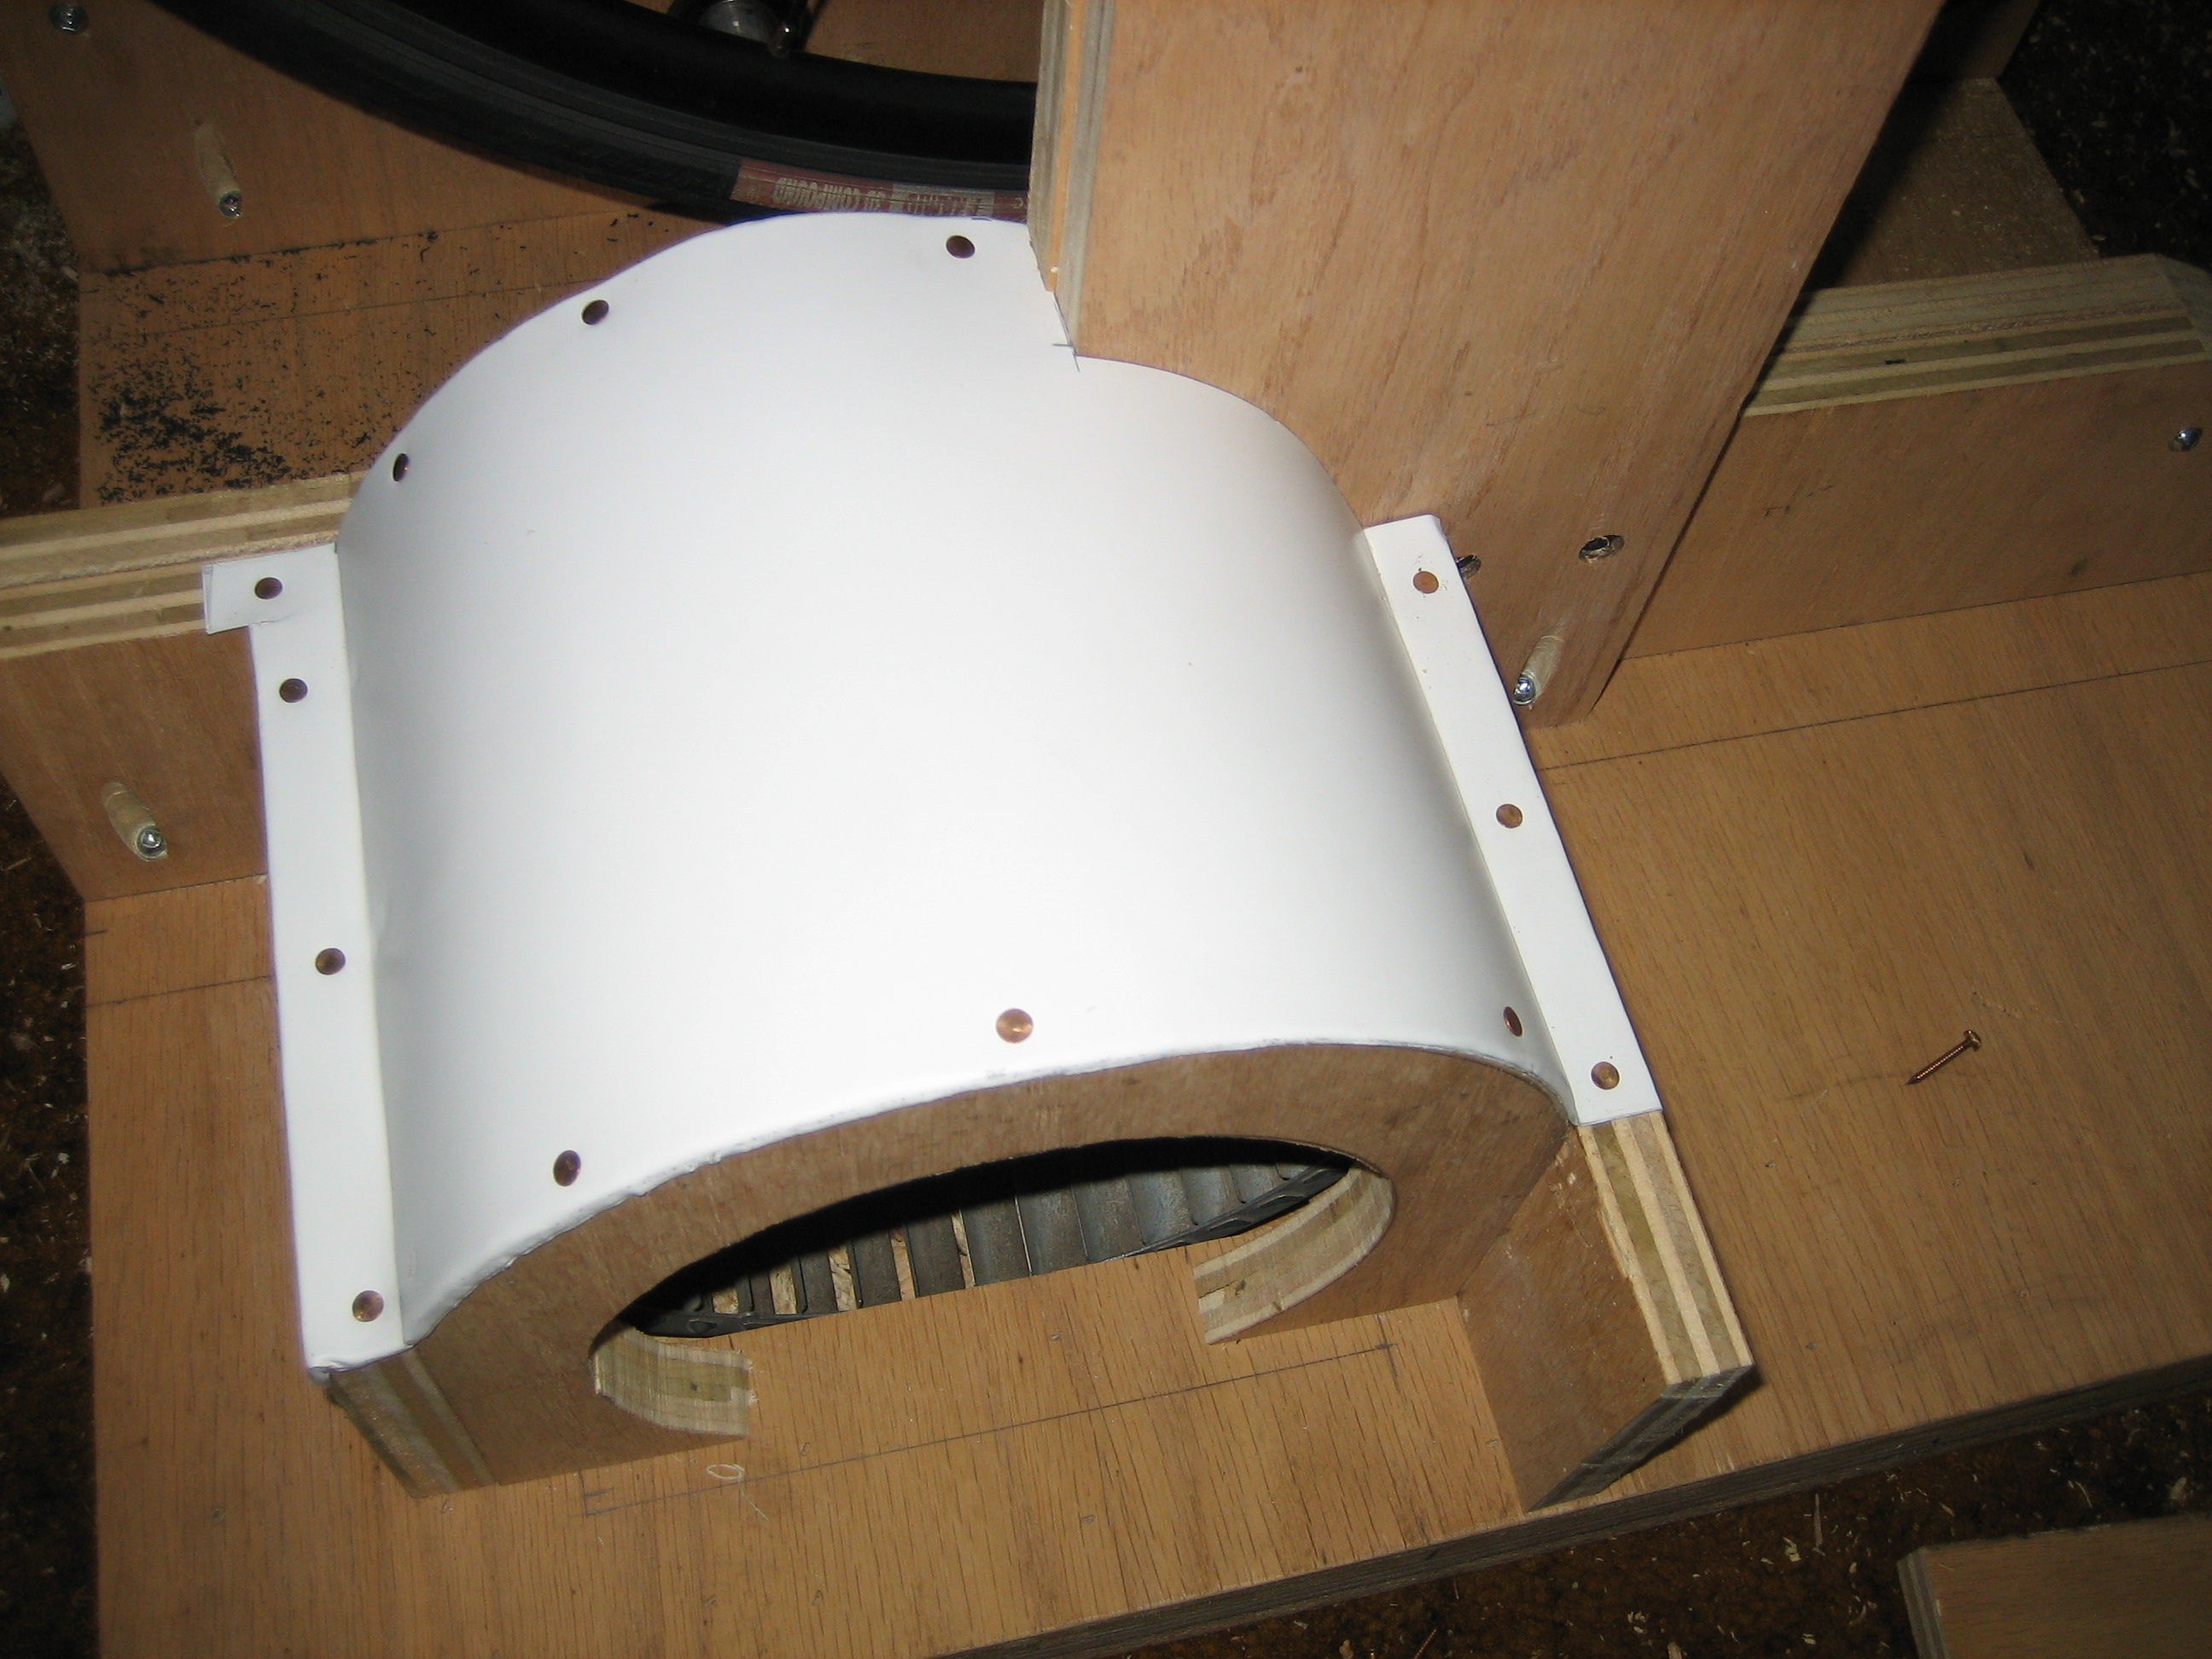 Picture of Wrapping the Fan in Aluminum